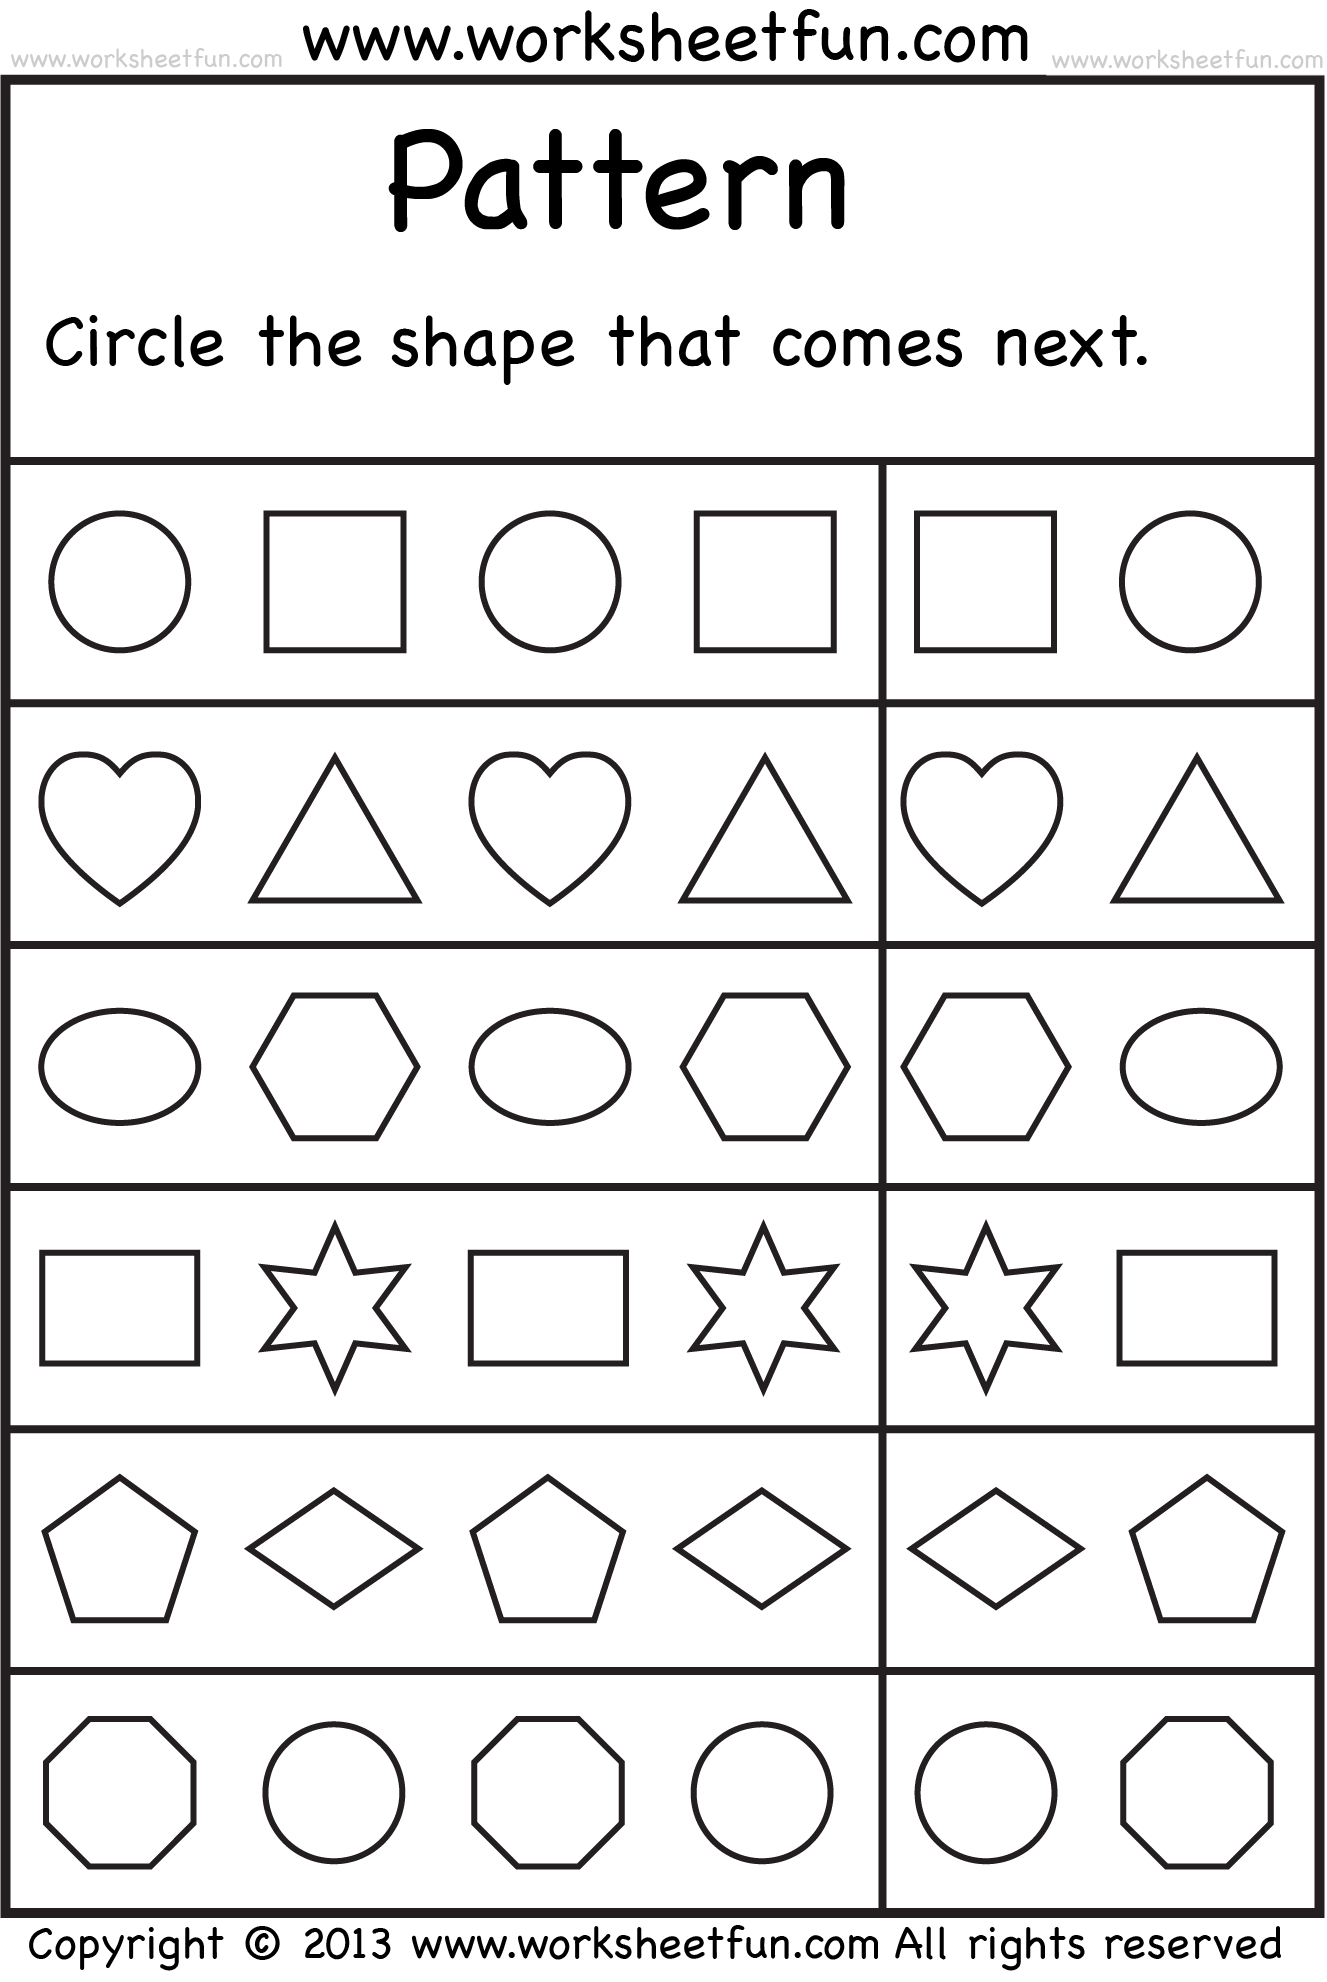 Proatmealus  Pleasing  Images About School Worksheets On Pinterest  Number Words  With Magnificent  Images About School Worksheets On Pinterest  Number Words Alphabet Worksheets And Free Printable Kindergarten Worksheets With Lovely Esl Printable Worksheets Free Also Homework Kindergarten Worksheets In Addition Printable Missing Number Worksheets And Az Worksheets For Kindergarten As Well As Patterning Worksheets Grade  Additionally Multiplication Worksheets  Times Tables From Pinterestcom With Proatmealus  Magnificent  Images About School Worksheets On Pinterest  Number Words  With Lovely  Images About School Worksheets On Pinterest  Number Words Alphabet Worksheets And Free Printable Kindergarten Worksheets And Pleasing Esl Printable Worksheets Free Also Homework Kindergarten Worksheets In Addition Printable Missing Number Worksheets From Pinterestcom